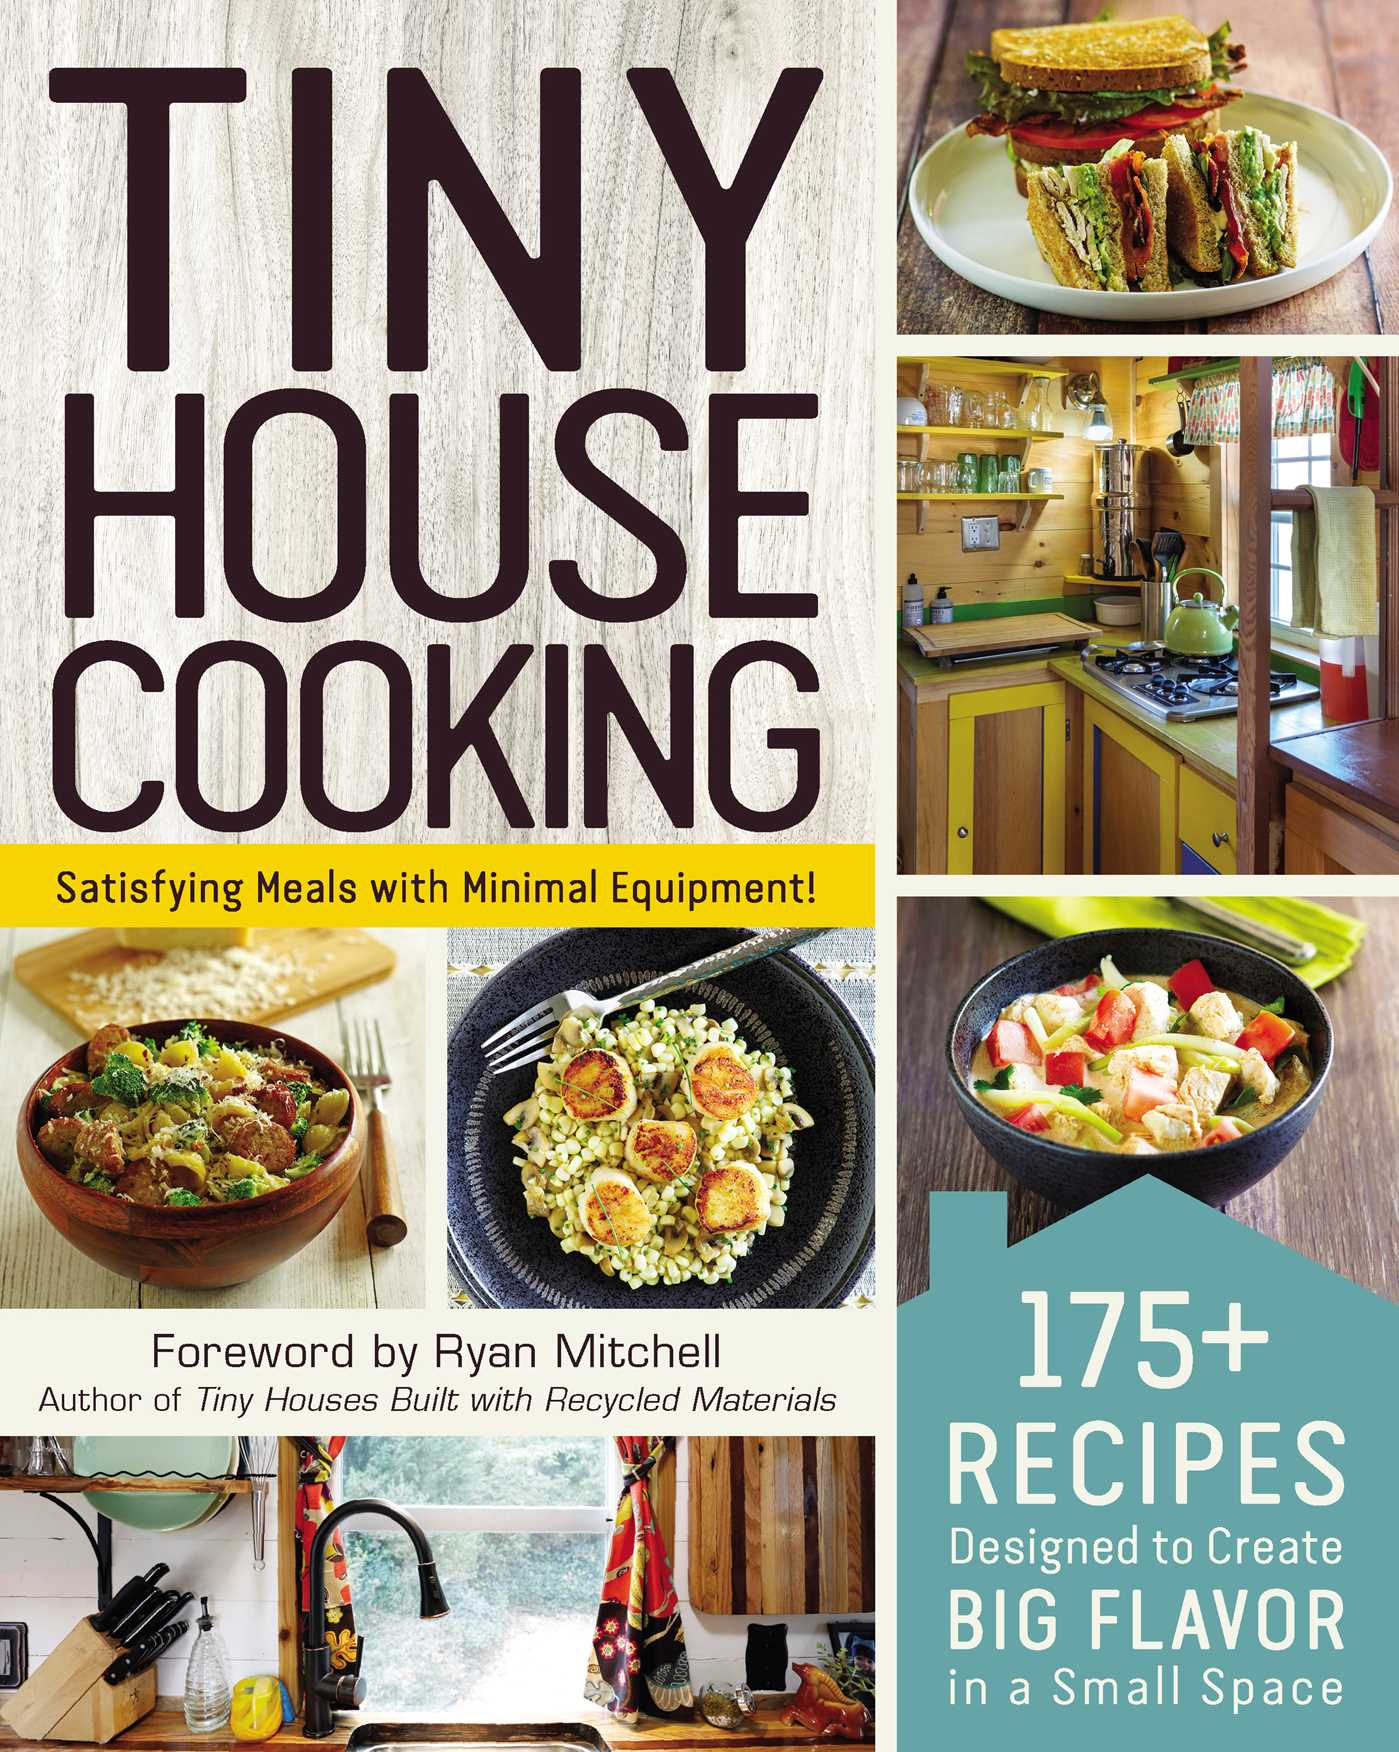 Tiny house cooking 9781507207147 hr